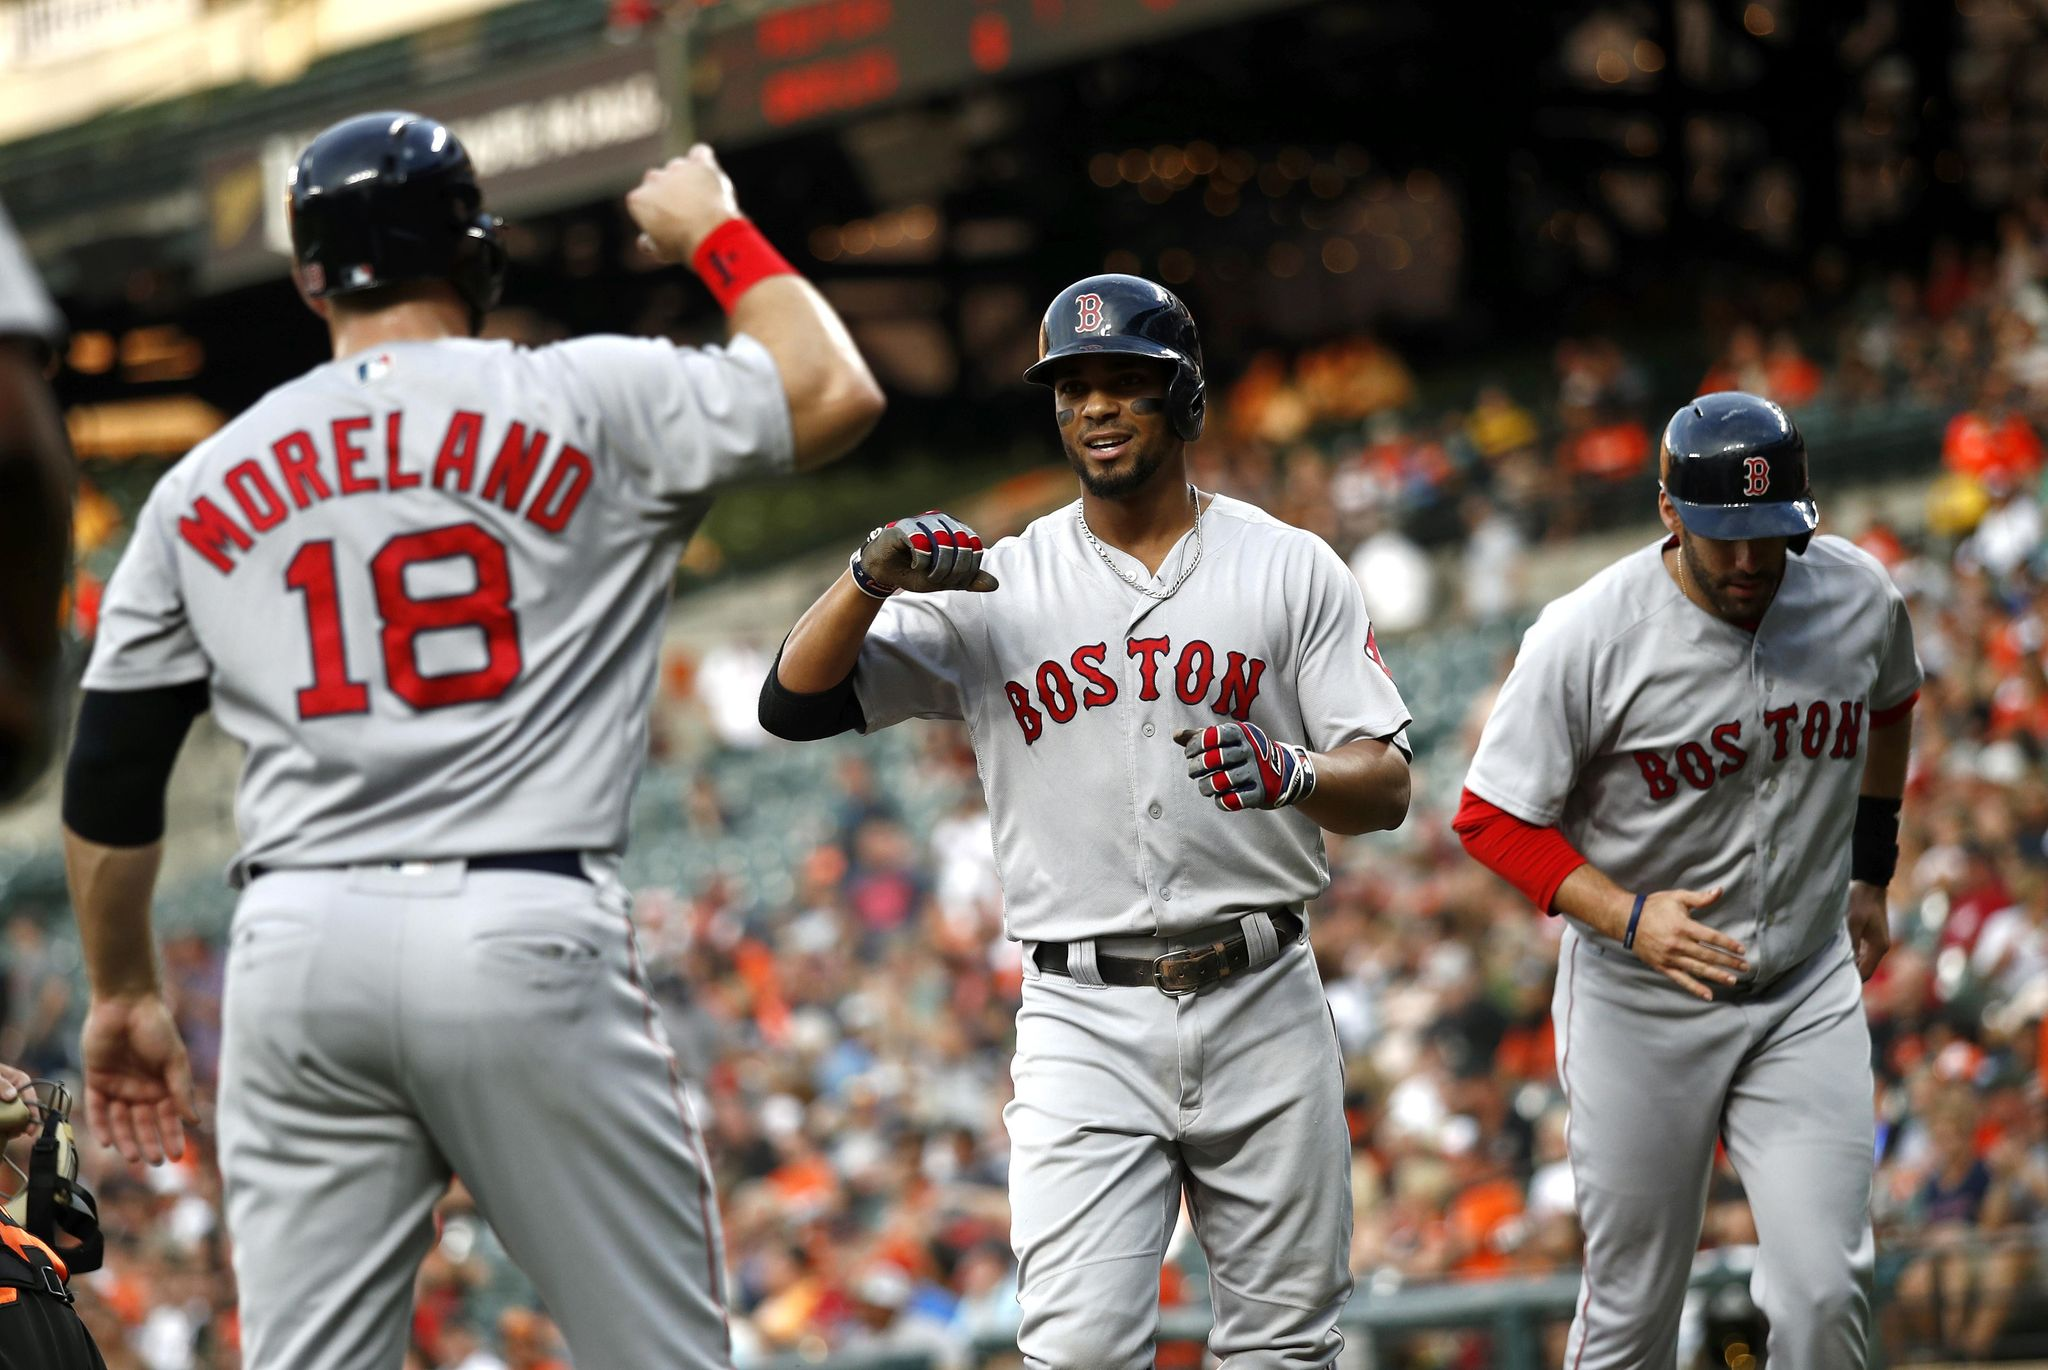 Red_sox_orioles_baseball_01238_s2048x1370